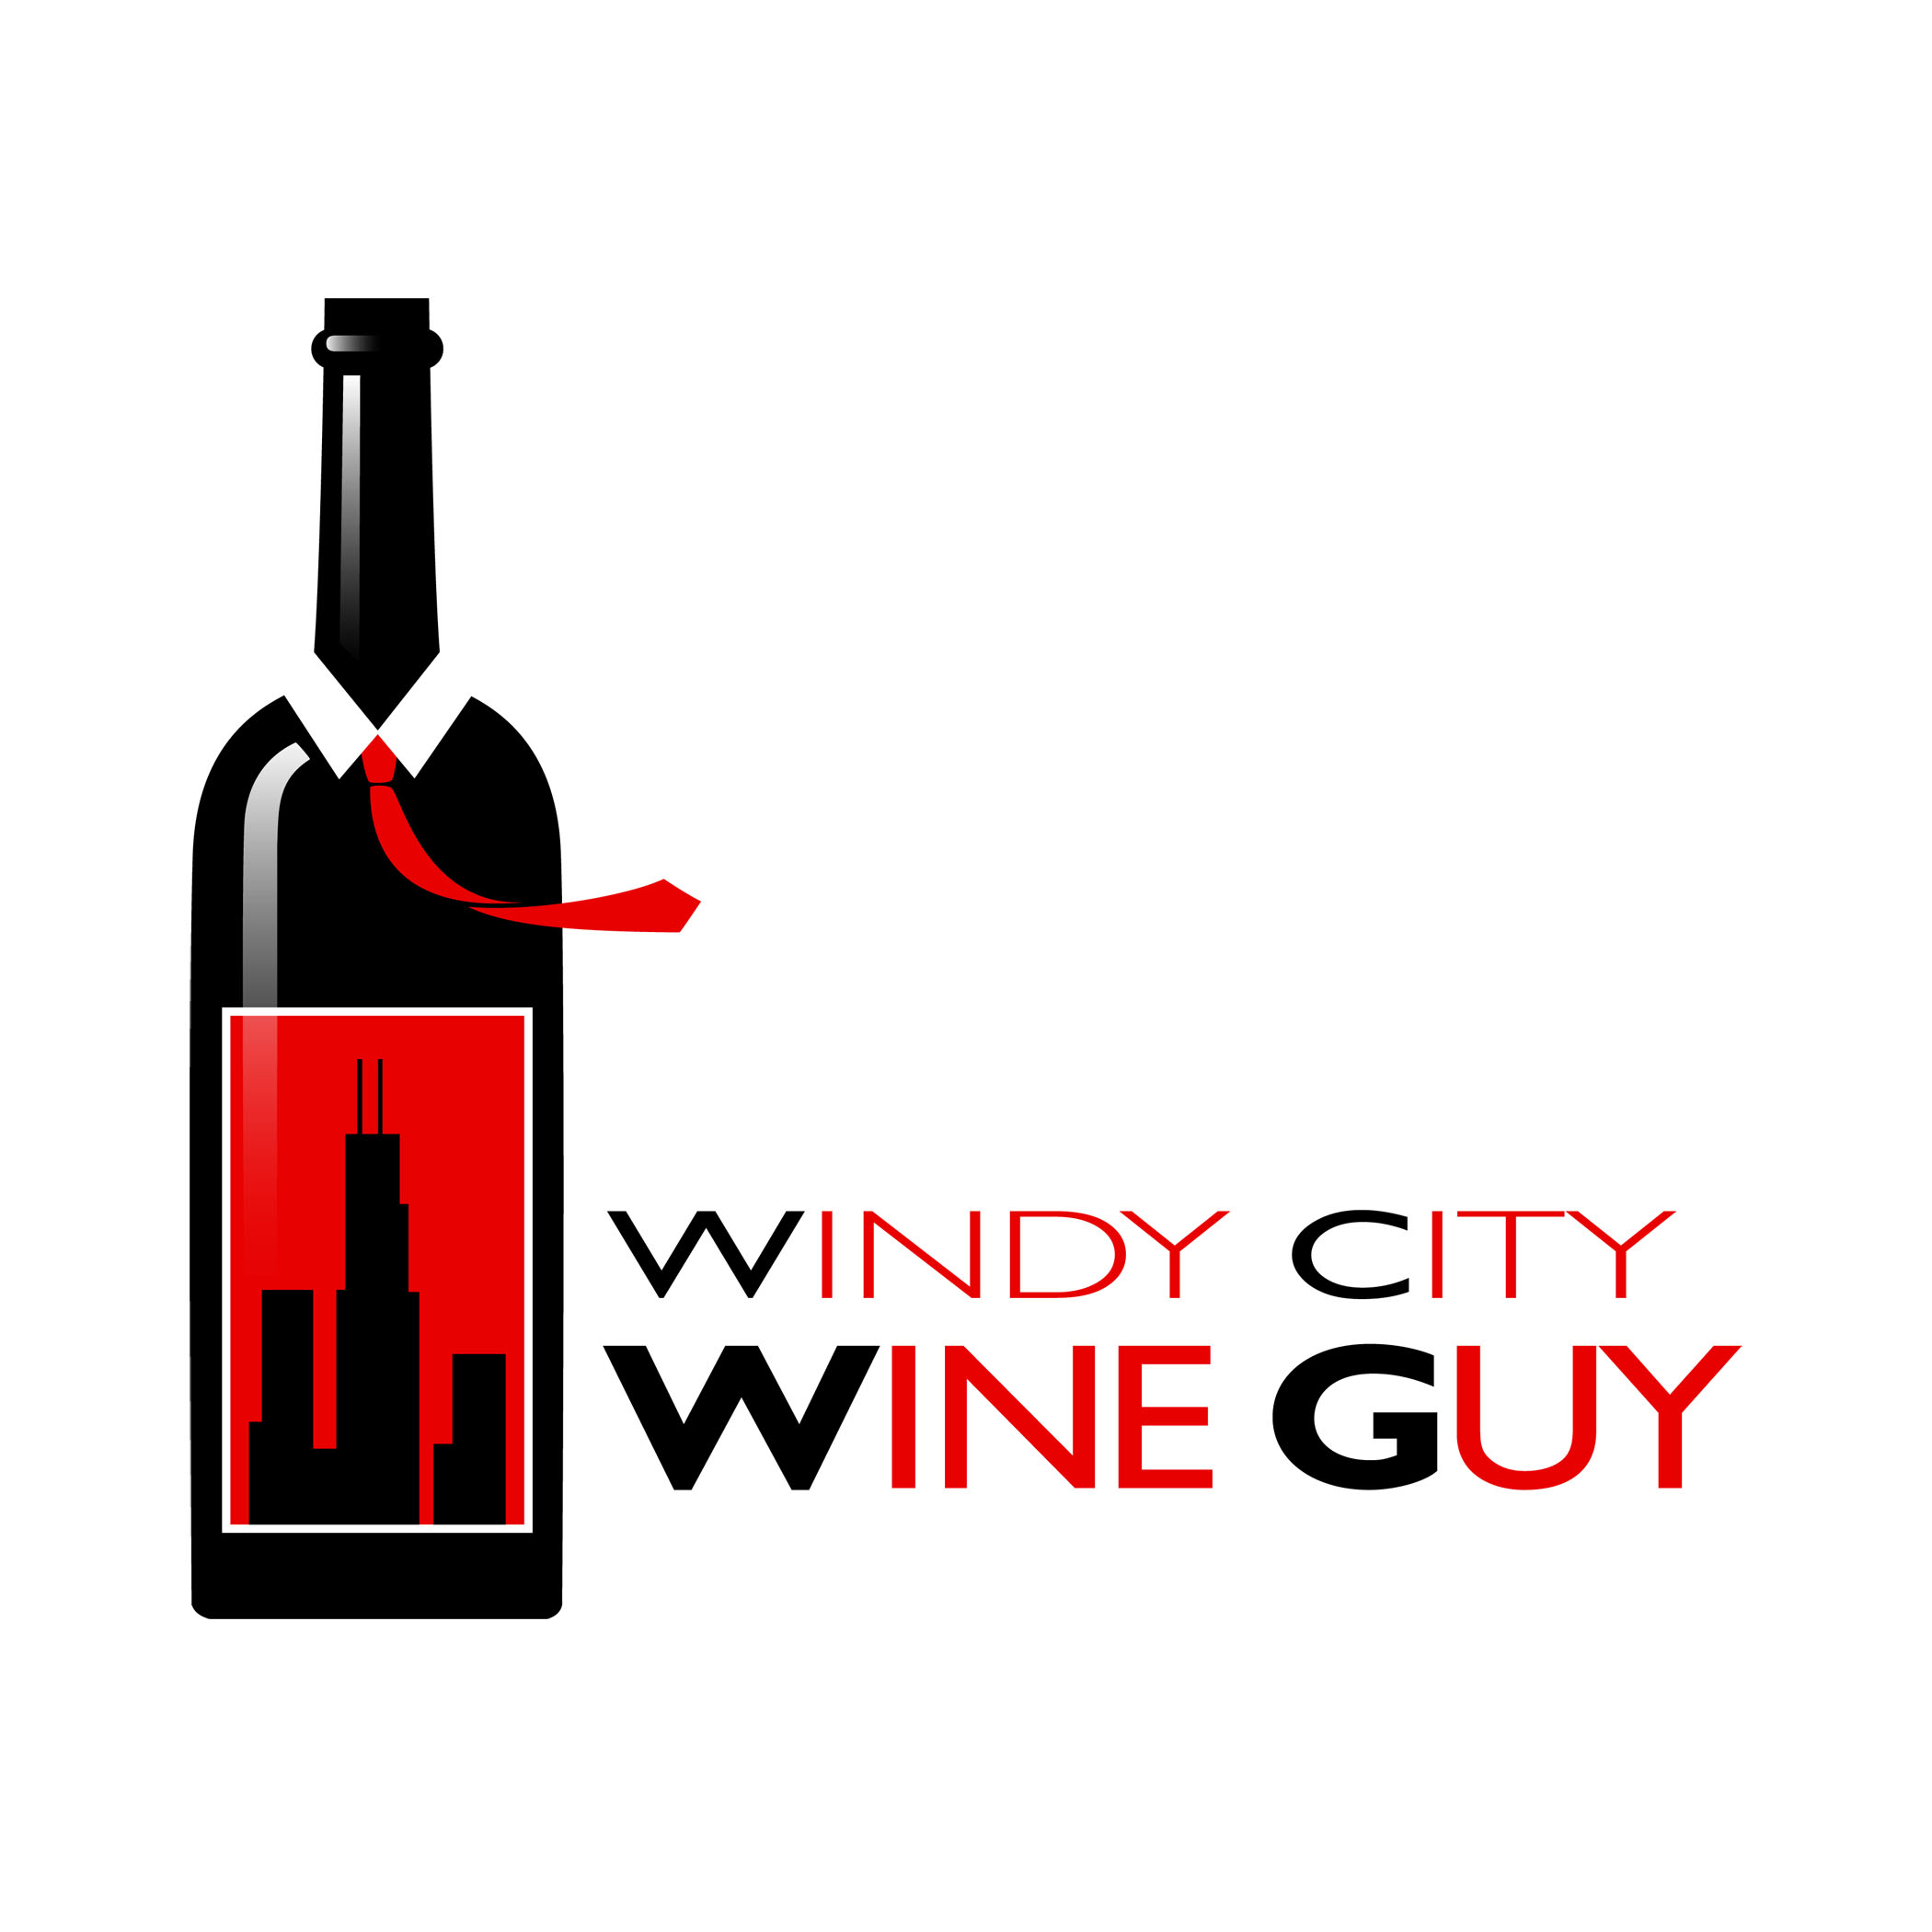 Windy City Wine Guy | Michael Bottigliero